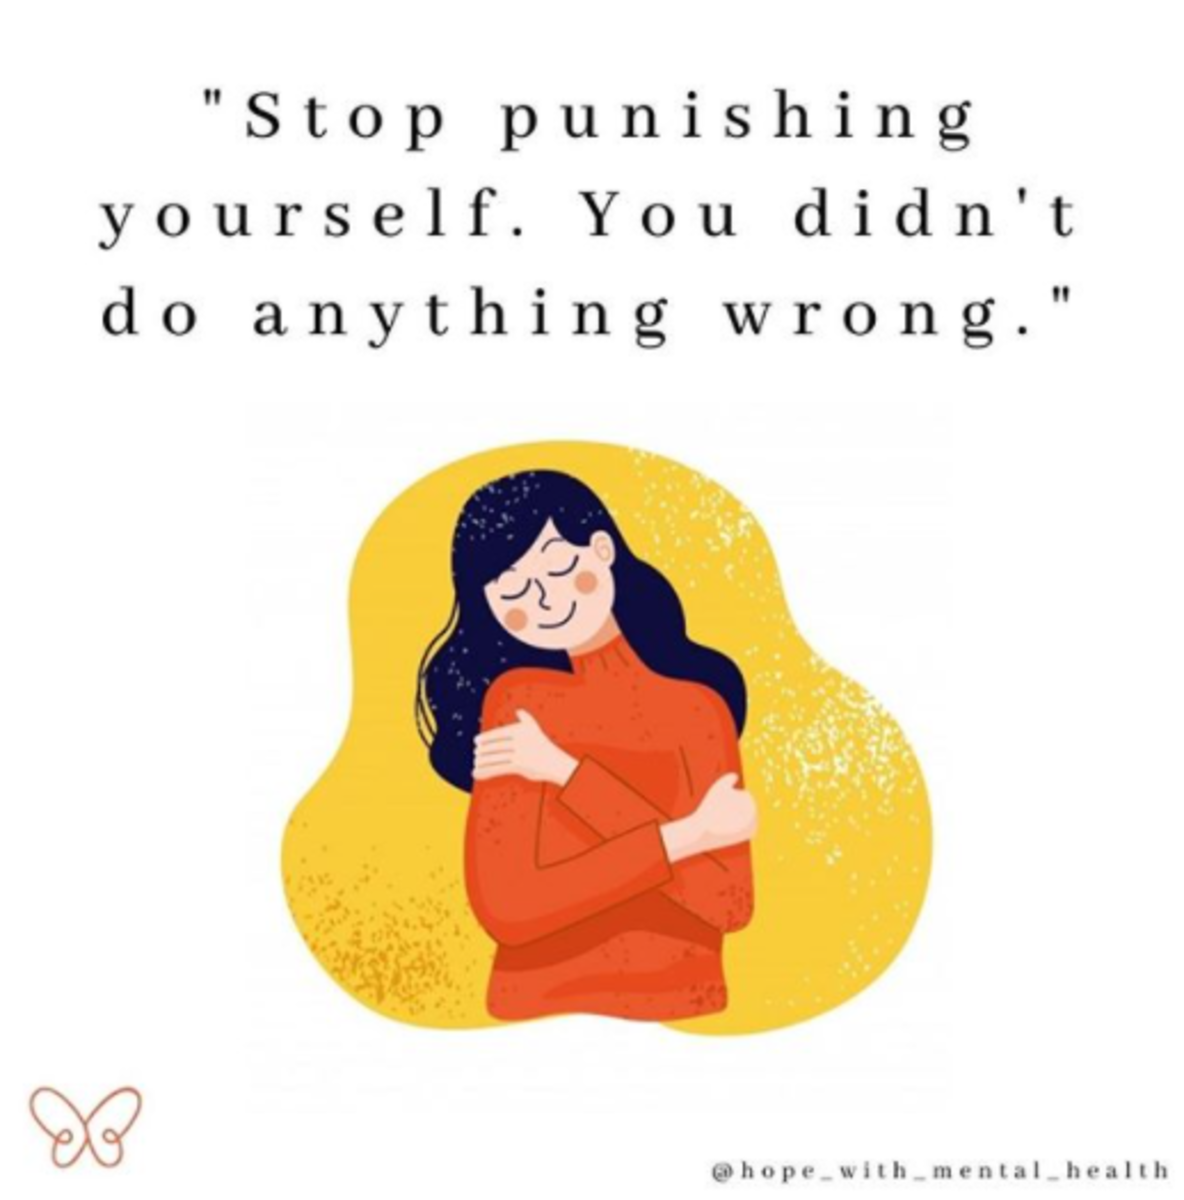 An important reminder from Hope With Mental Health